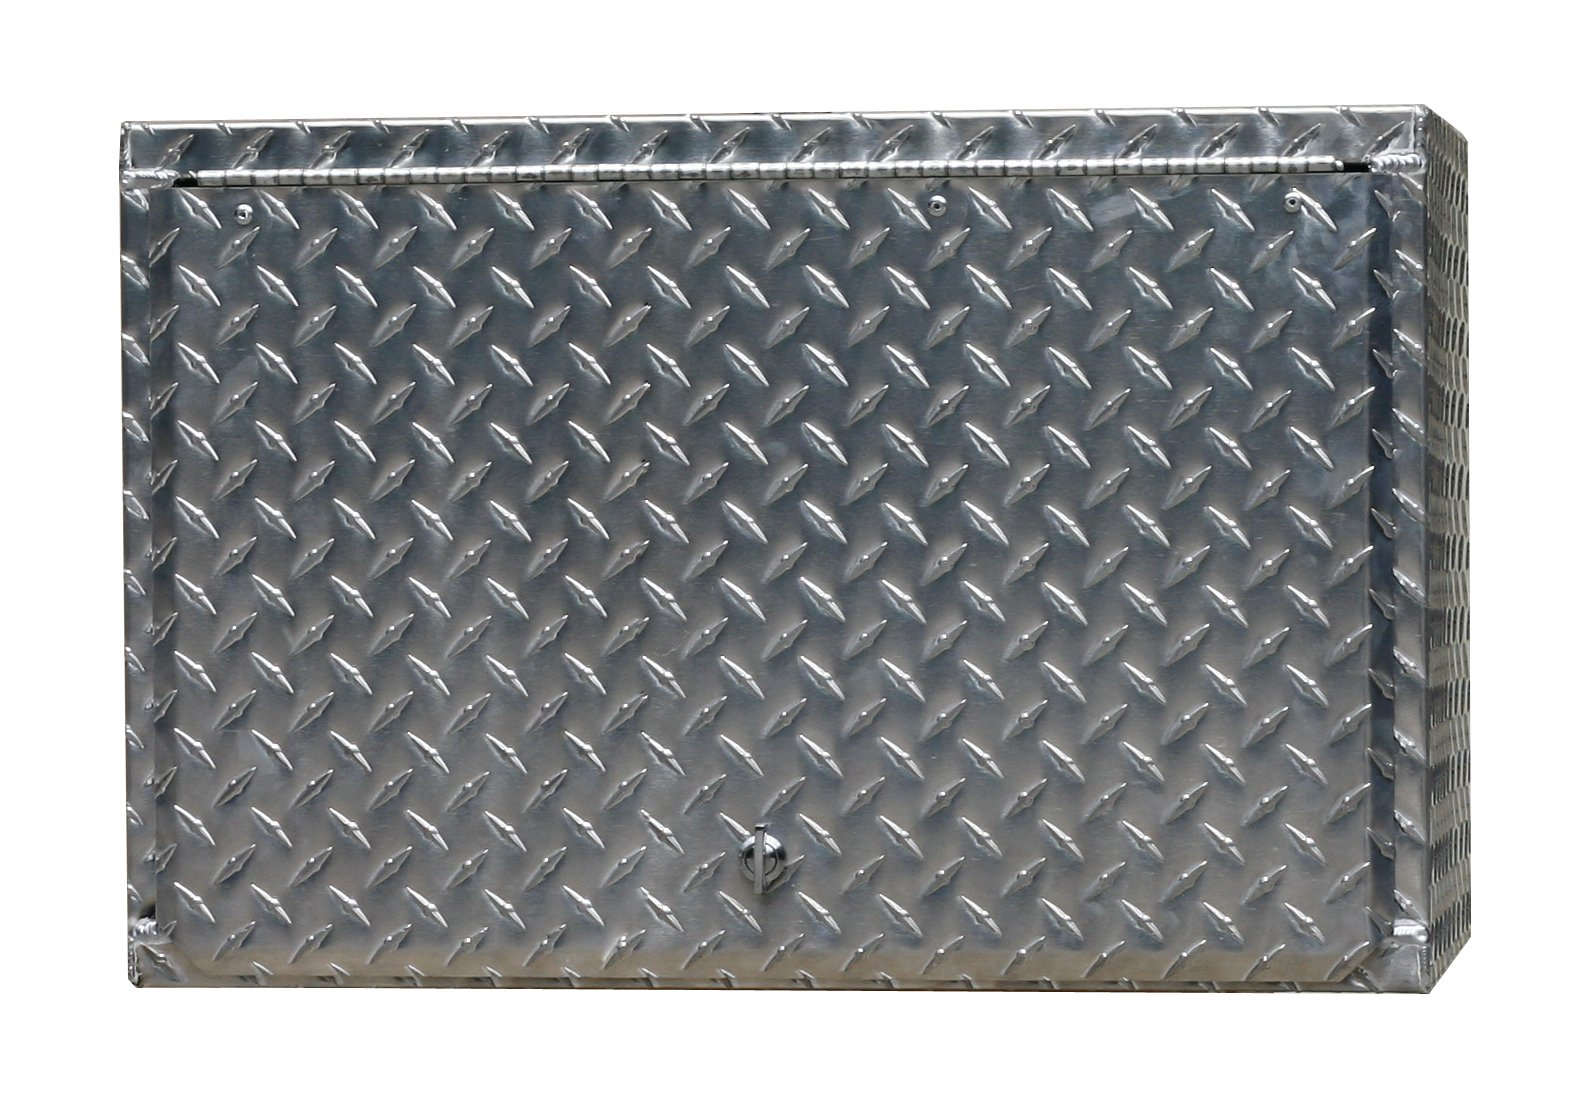 Pit Posse 908 24'' Diamond Plate Overhead Cabinet Aluminum Enclosed Race Trailer Shop Garage Storage Organizer